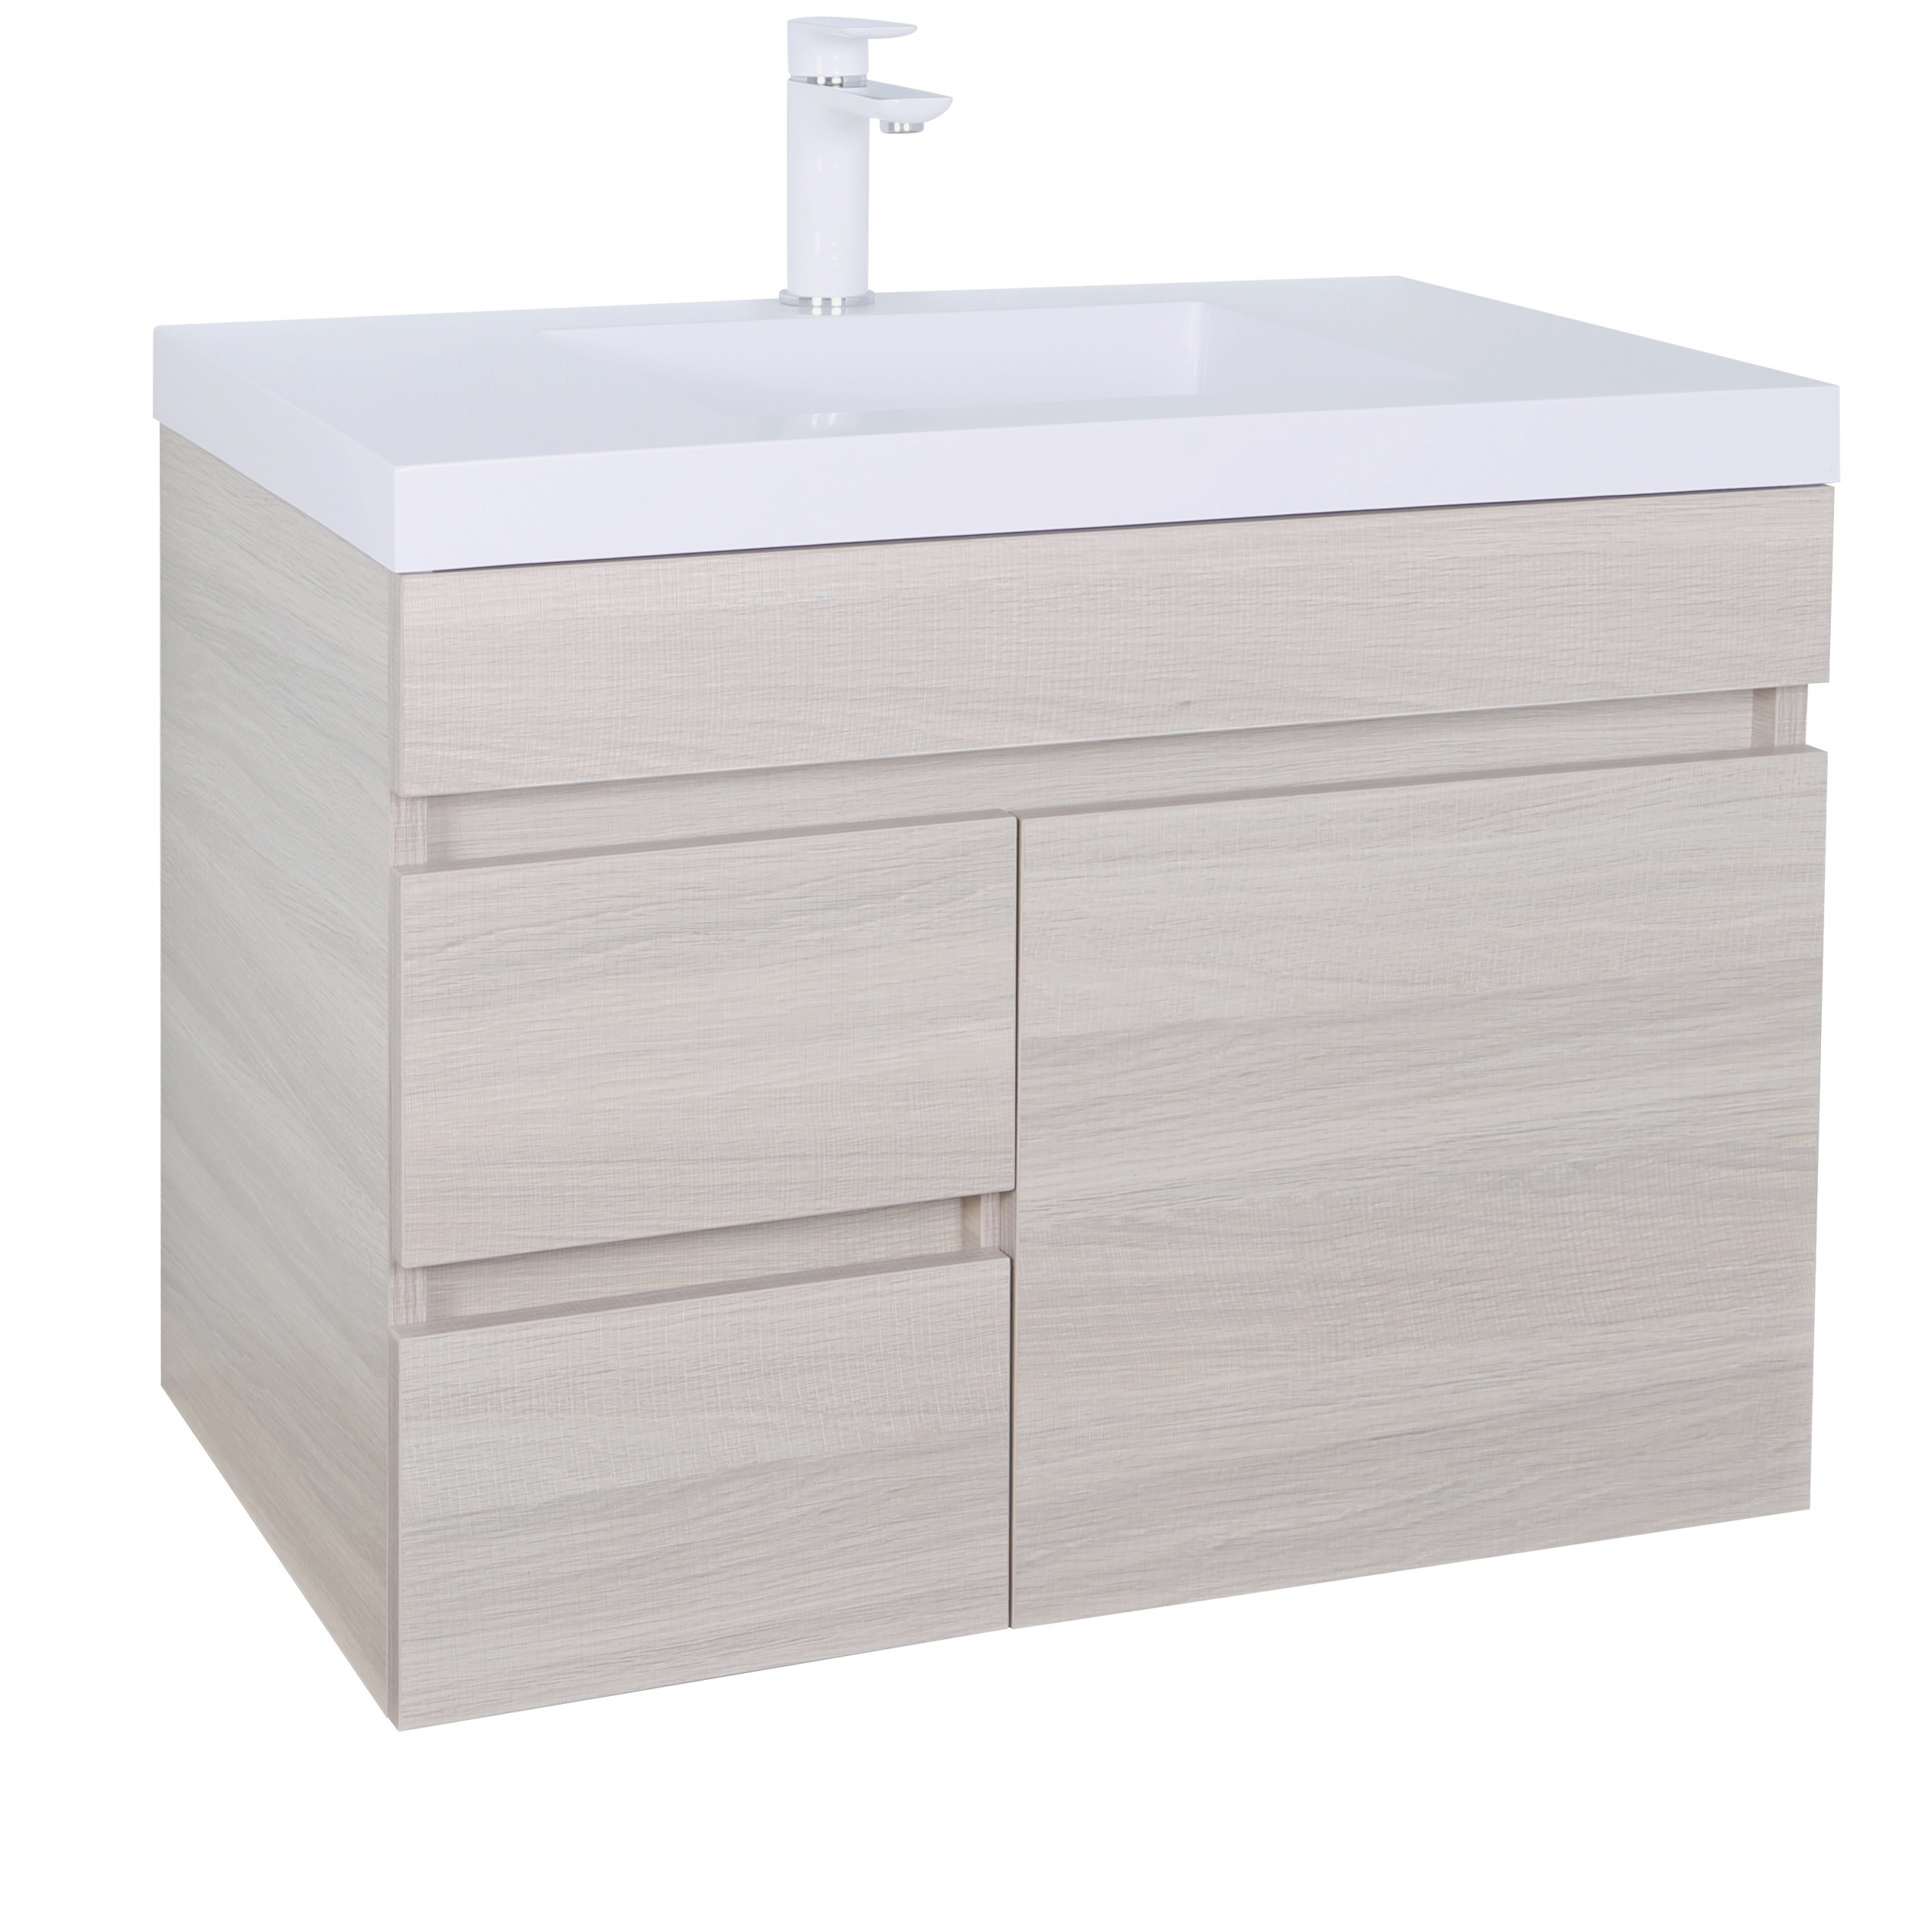 Evie Color Vanity EV74LWH-OAK